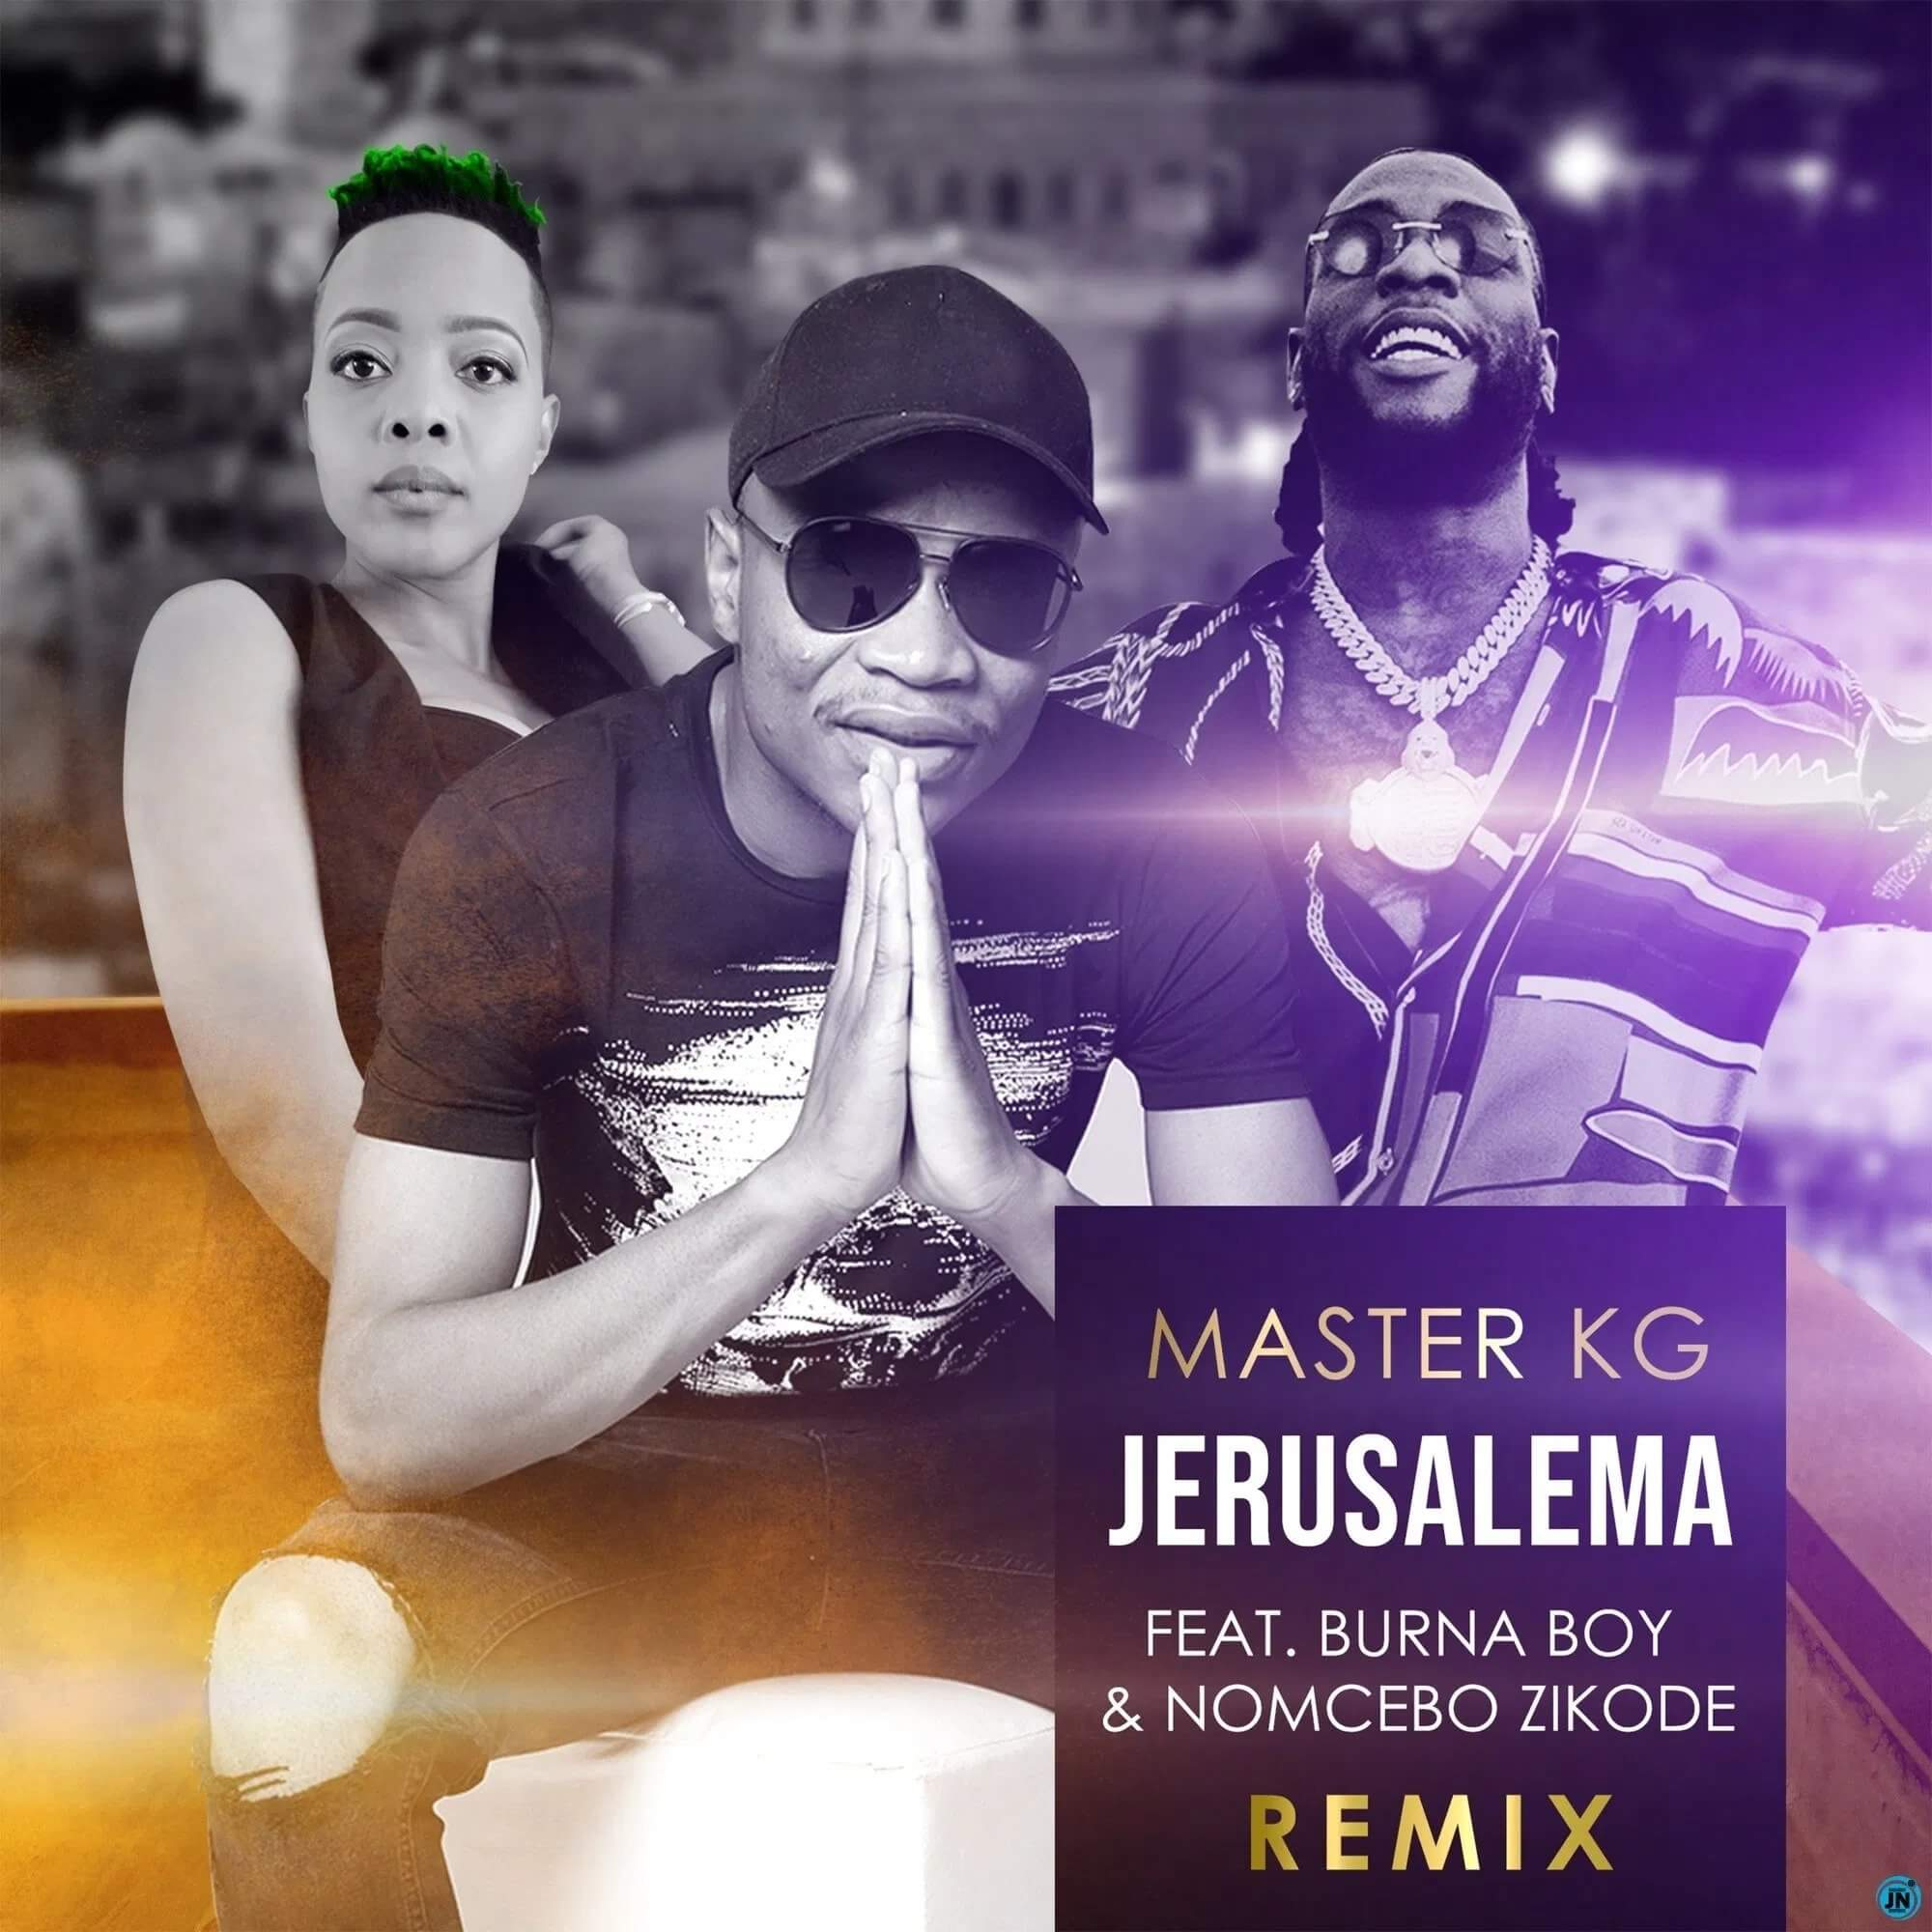 Download Master KG - Jerusalema (Remix) Ft. Burna Boy, Nomcebo Zikode Mp3